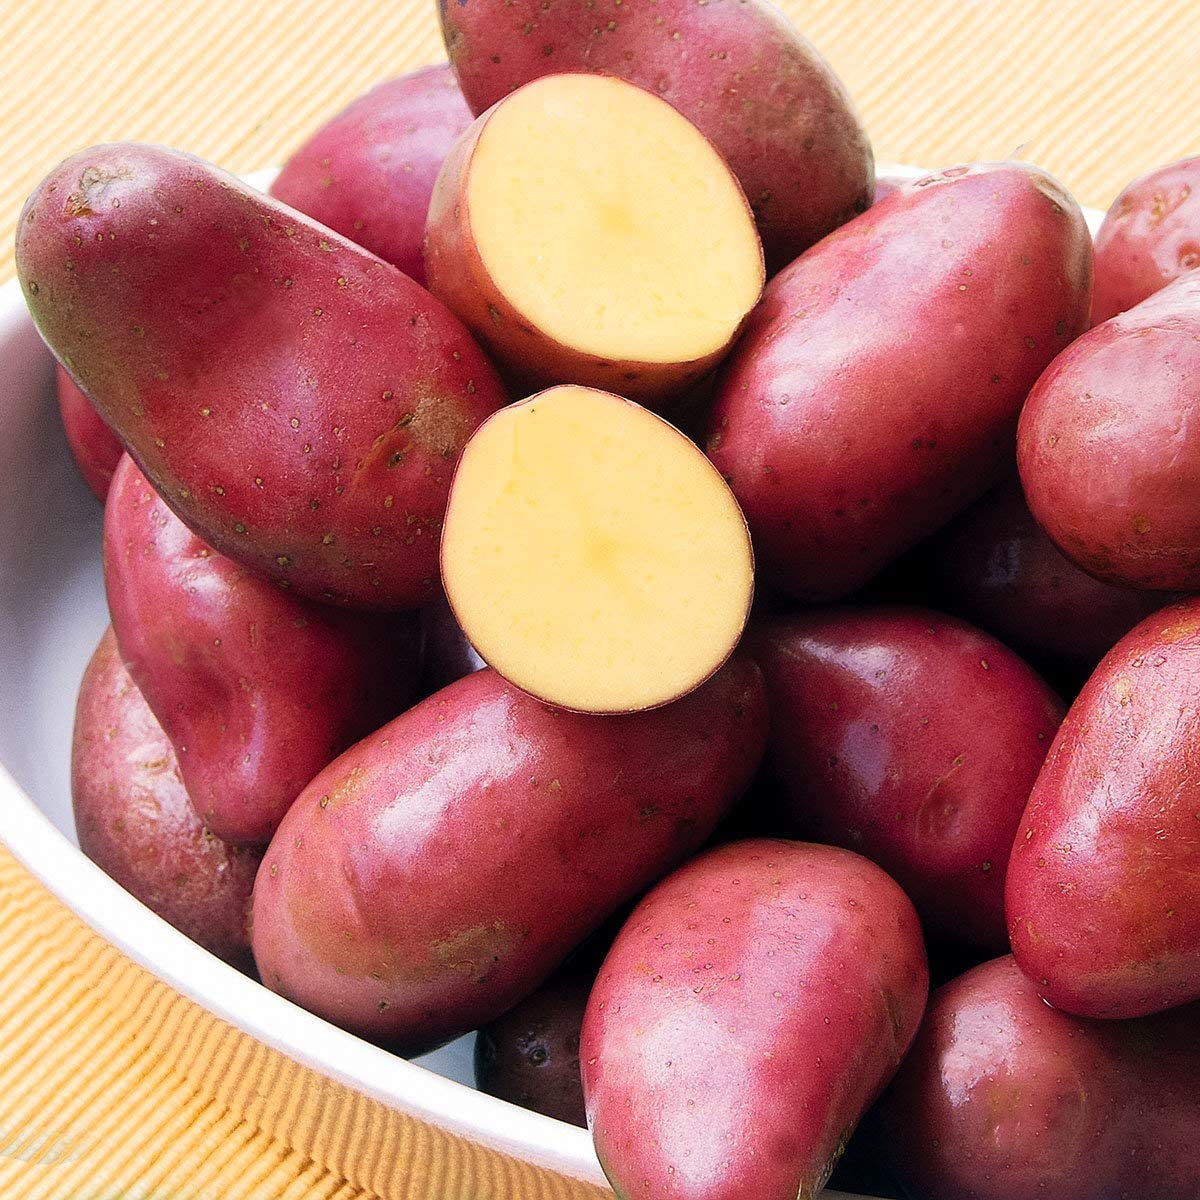 Garden Rare 100pcs Organic Potato 'Red Pontiac' Seeds Easy to Grow, Exotic Vegetable Seeds Hardy Perennial Garden